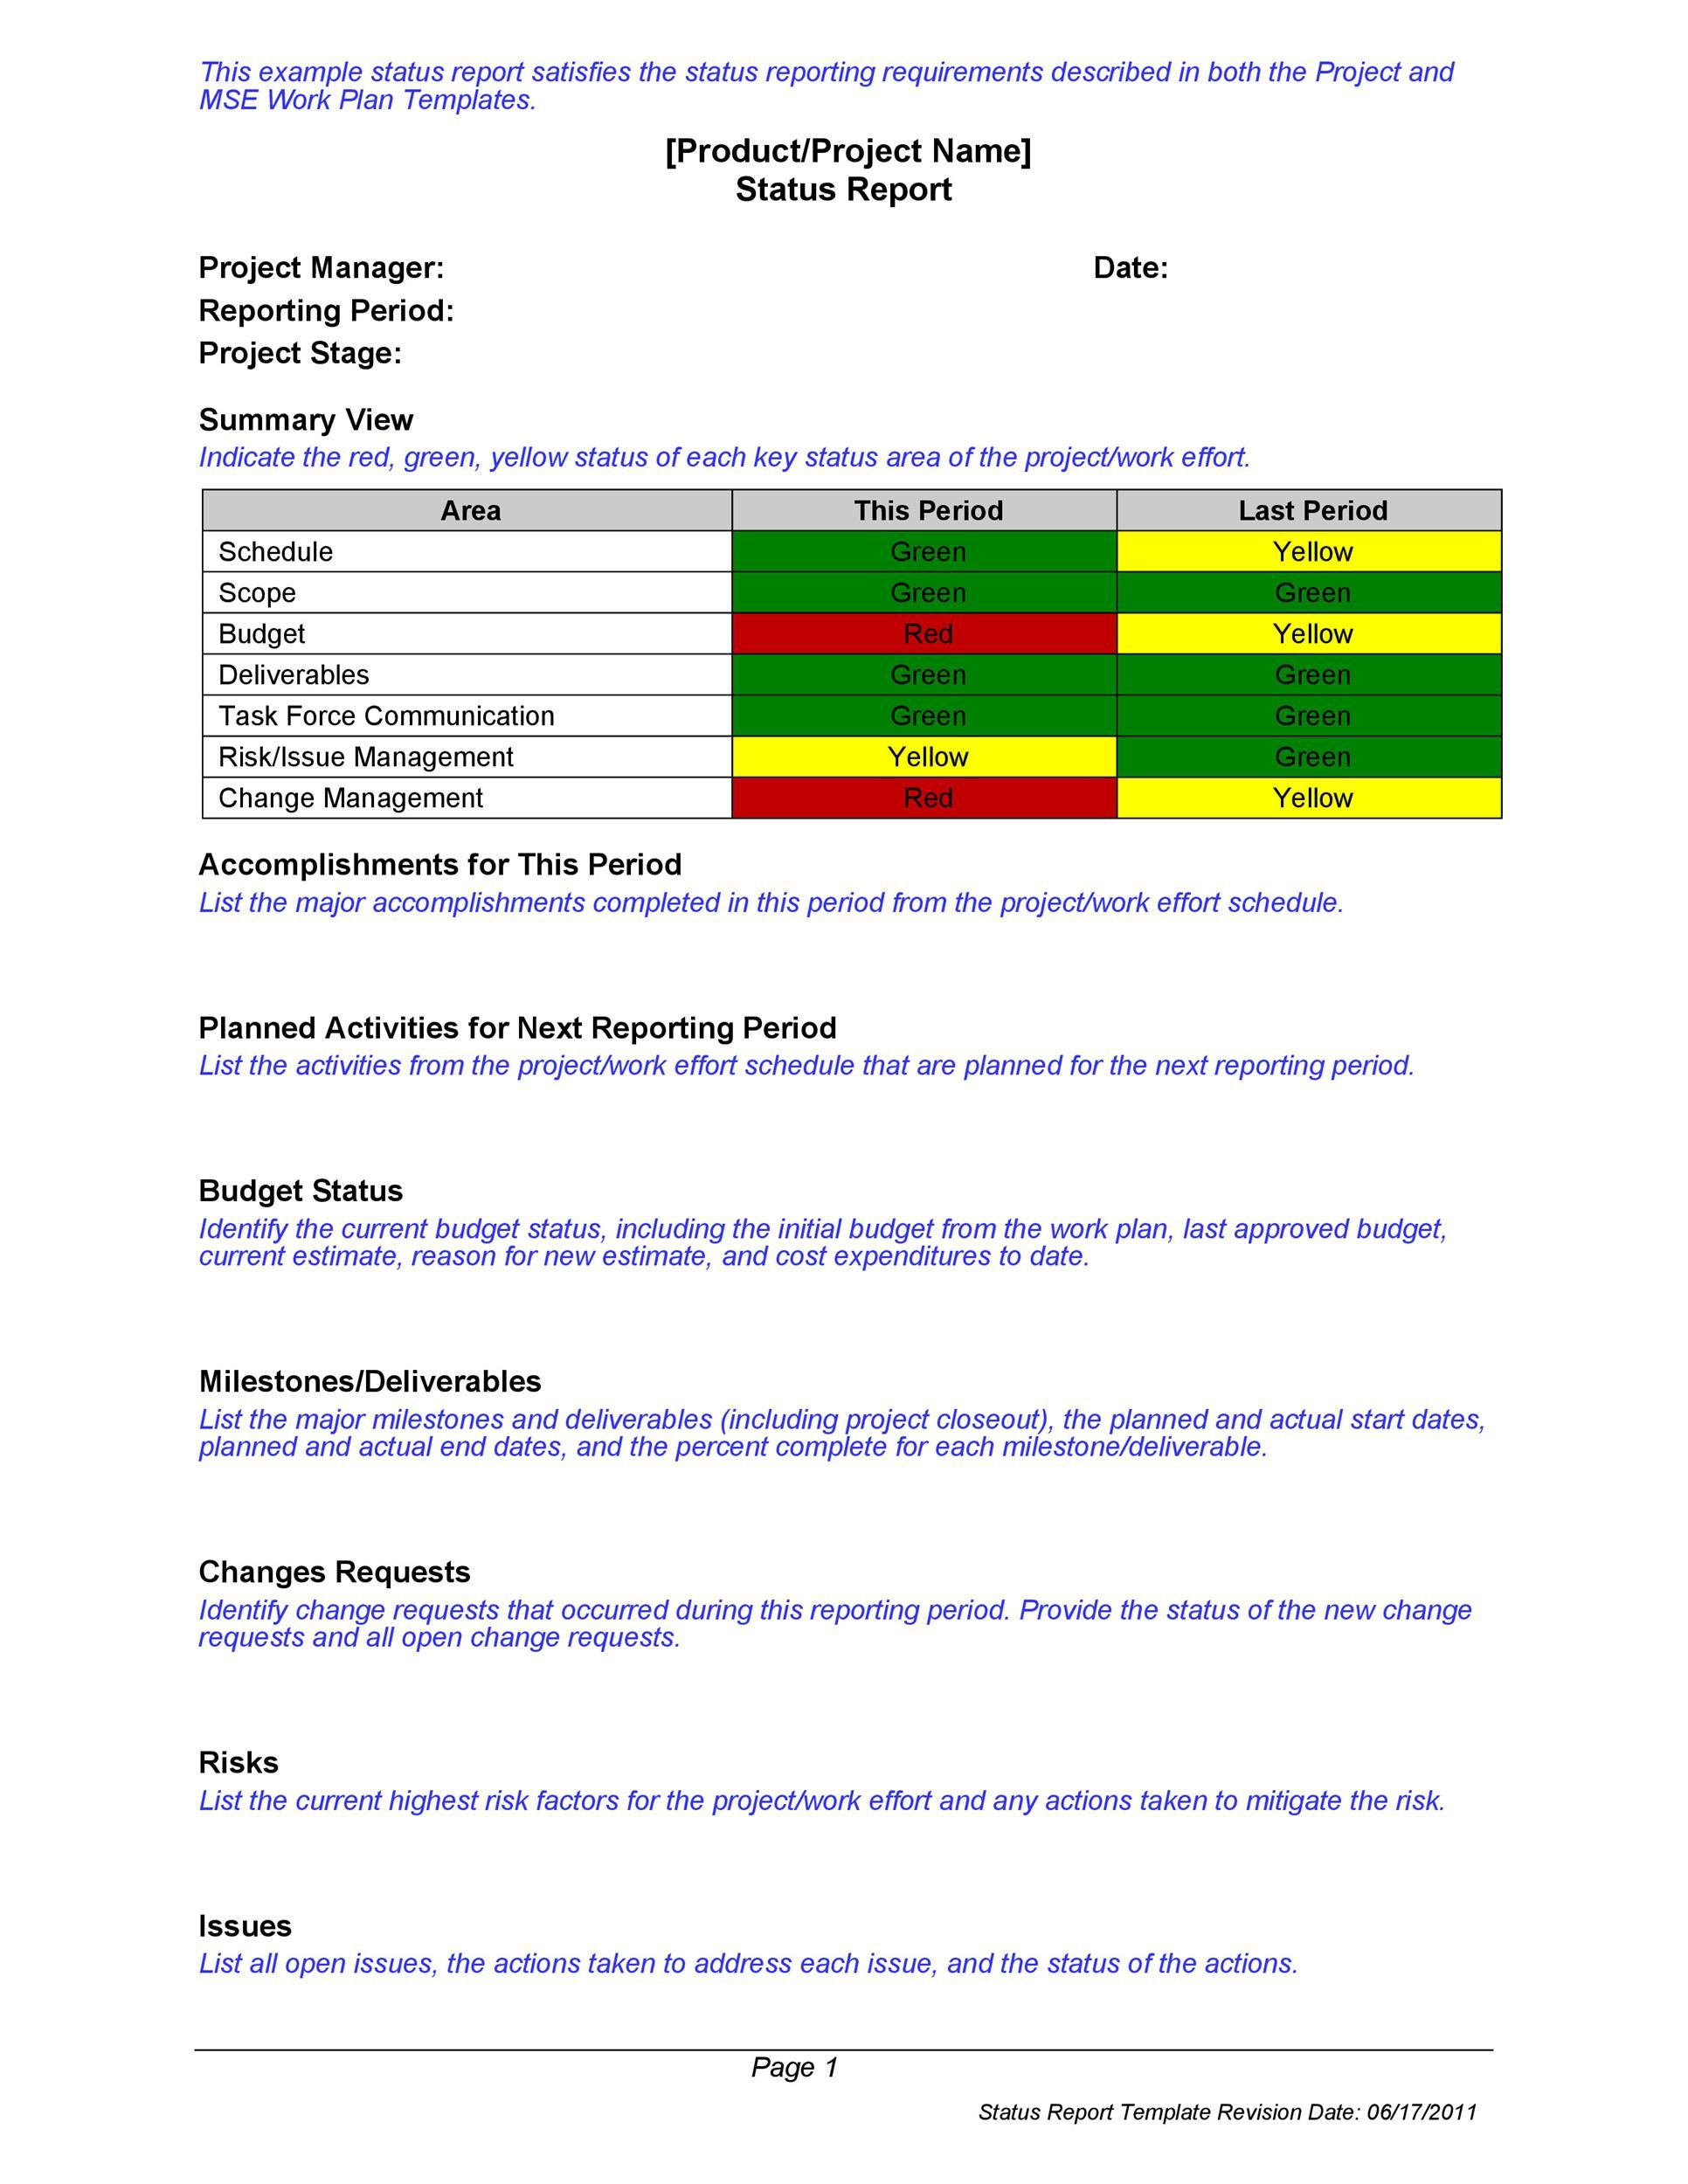 008 Remarkable Project Management Weekly Statu Report Template Ppt Picture  Template+powerpointFull